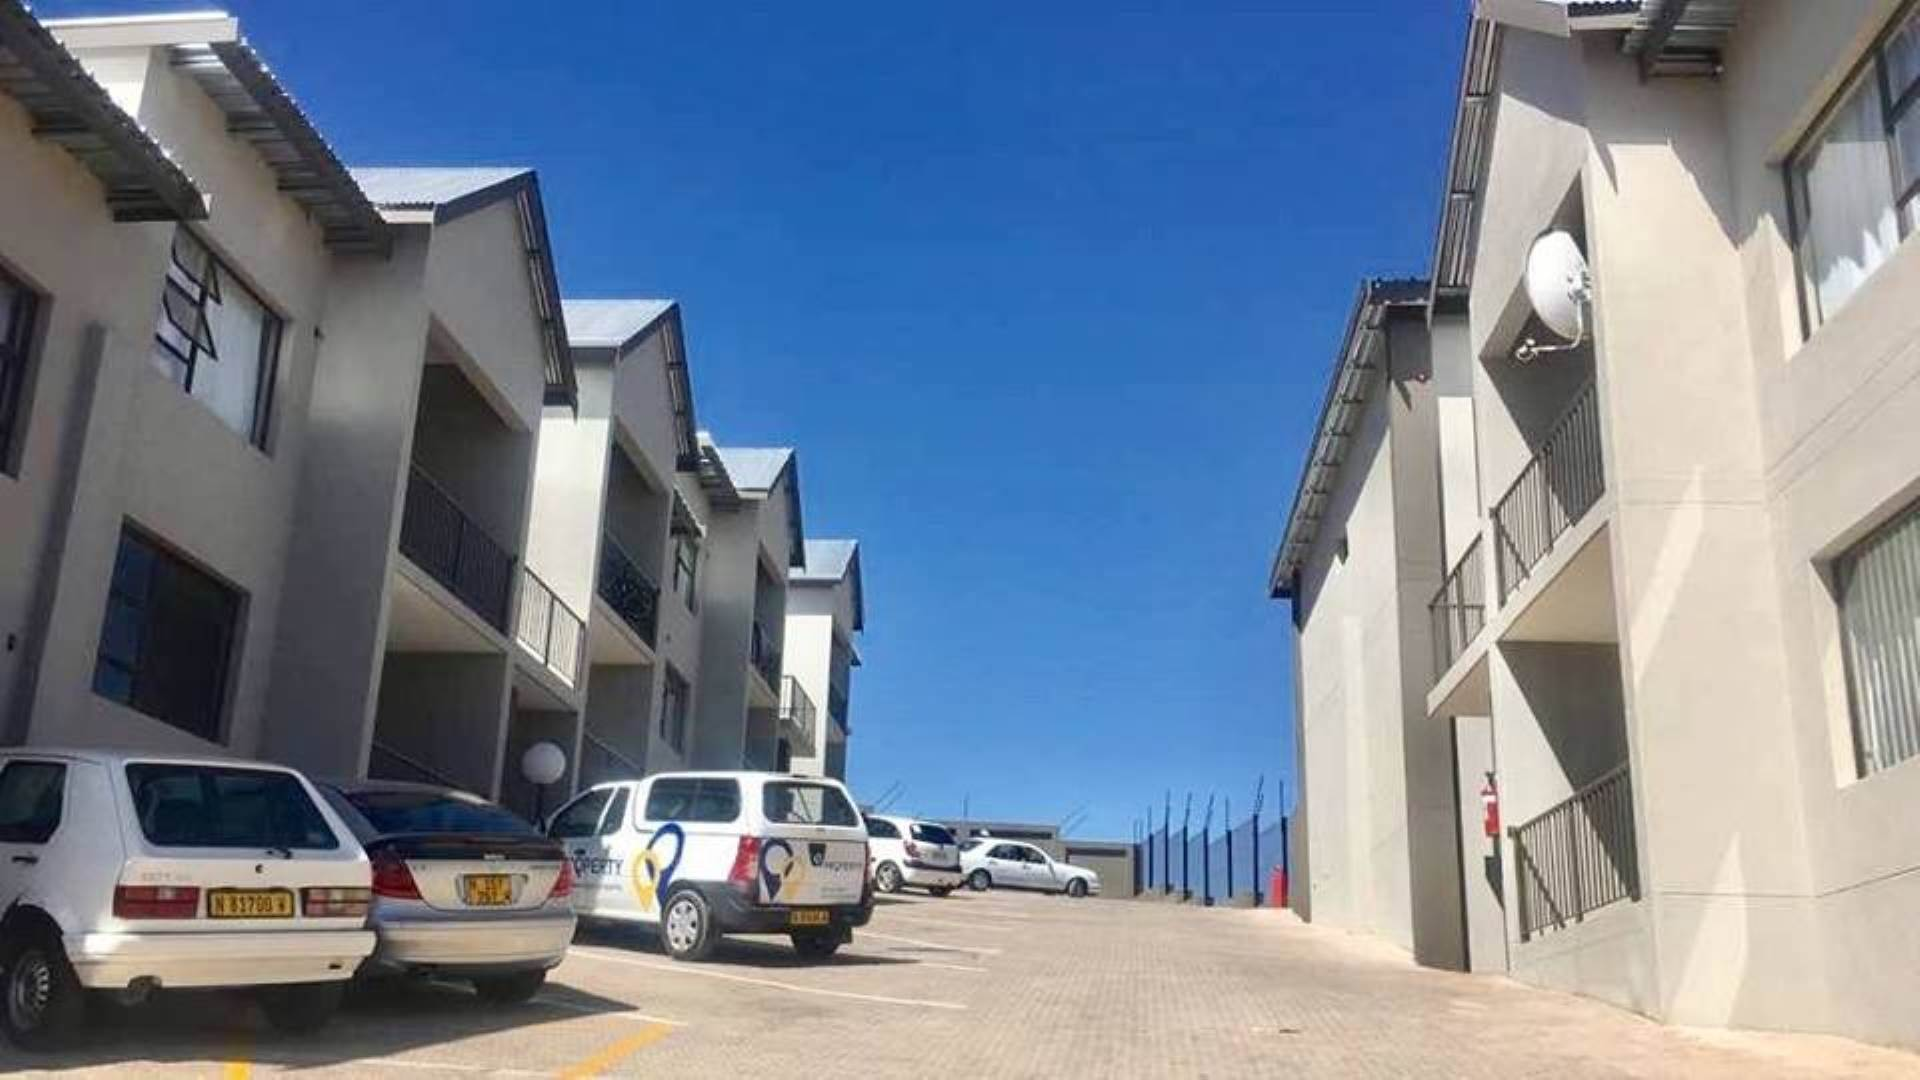 Townhouse For Sale In Rocky Crest, Windhoek, Namibia for NAM